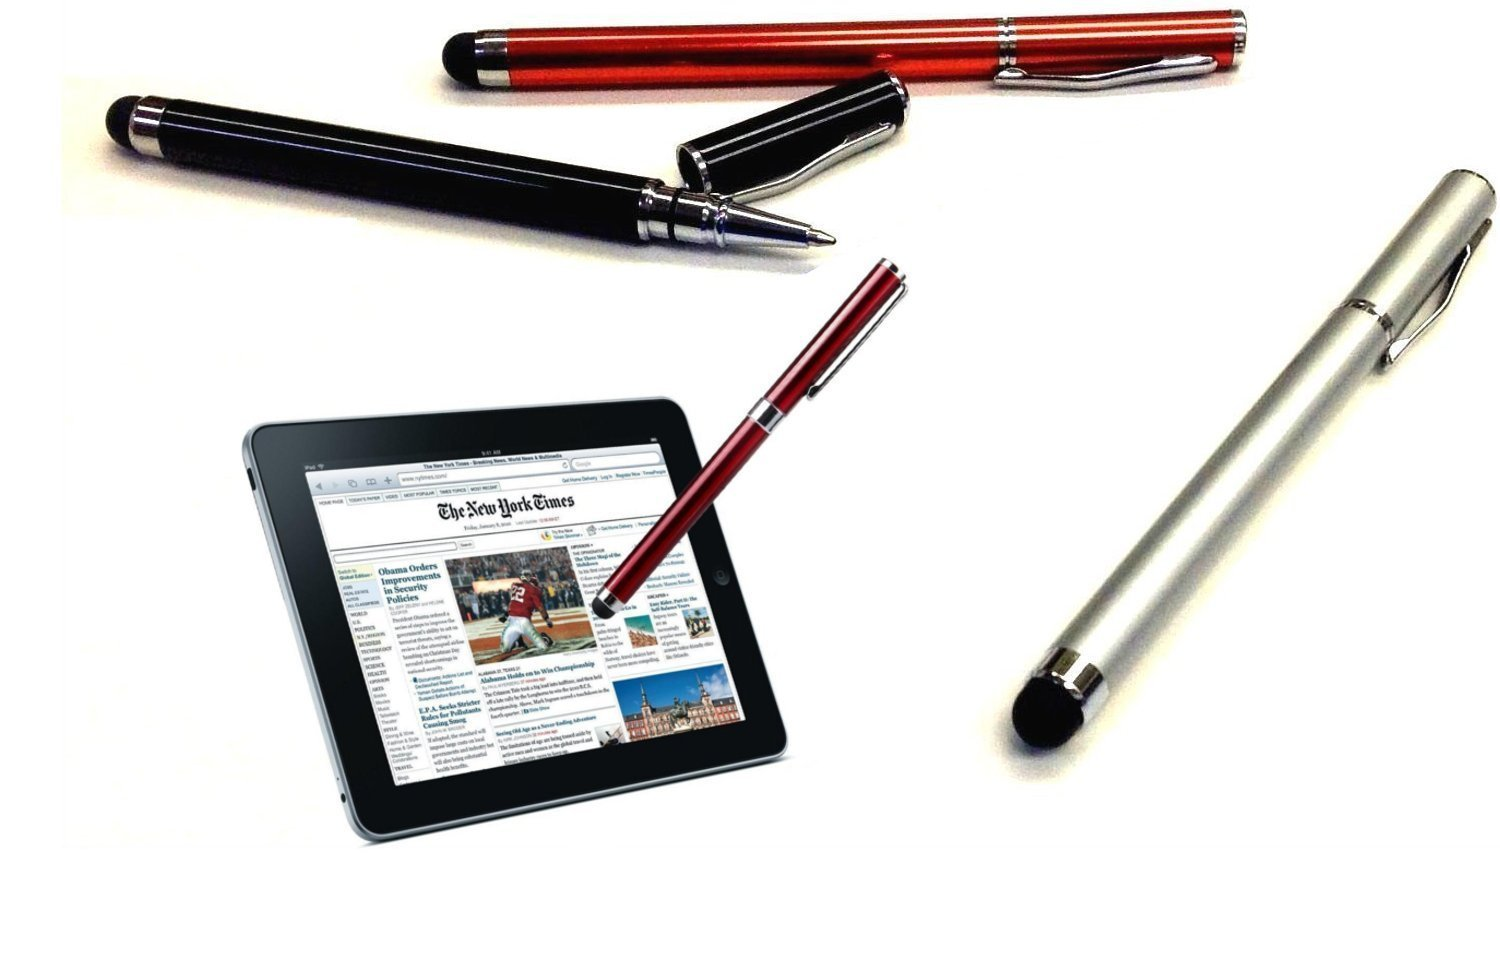 PRO ZTE Solar Custom High Sensitivity Touch Stylus + Writing Pen with Ink! [3 Pack - Silver Red Black]